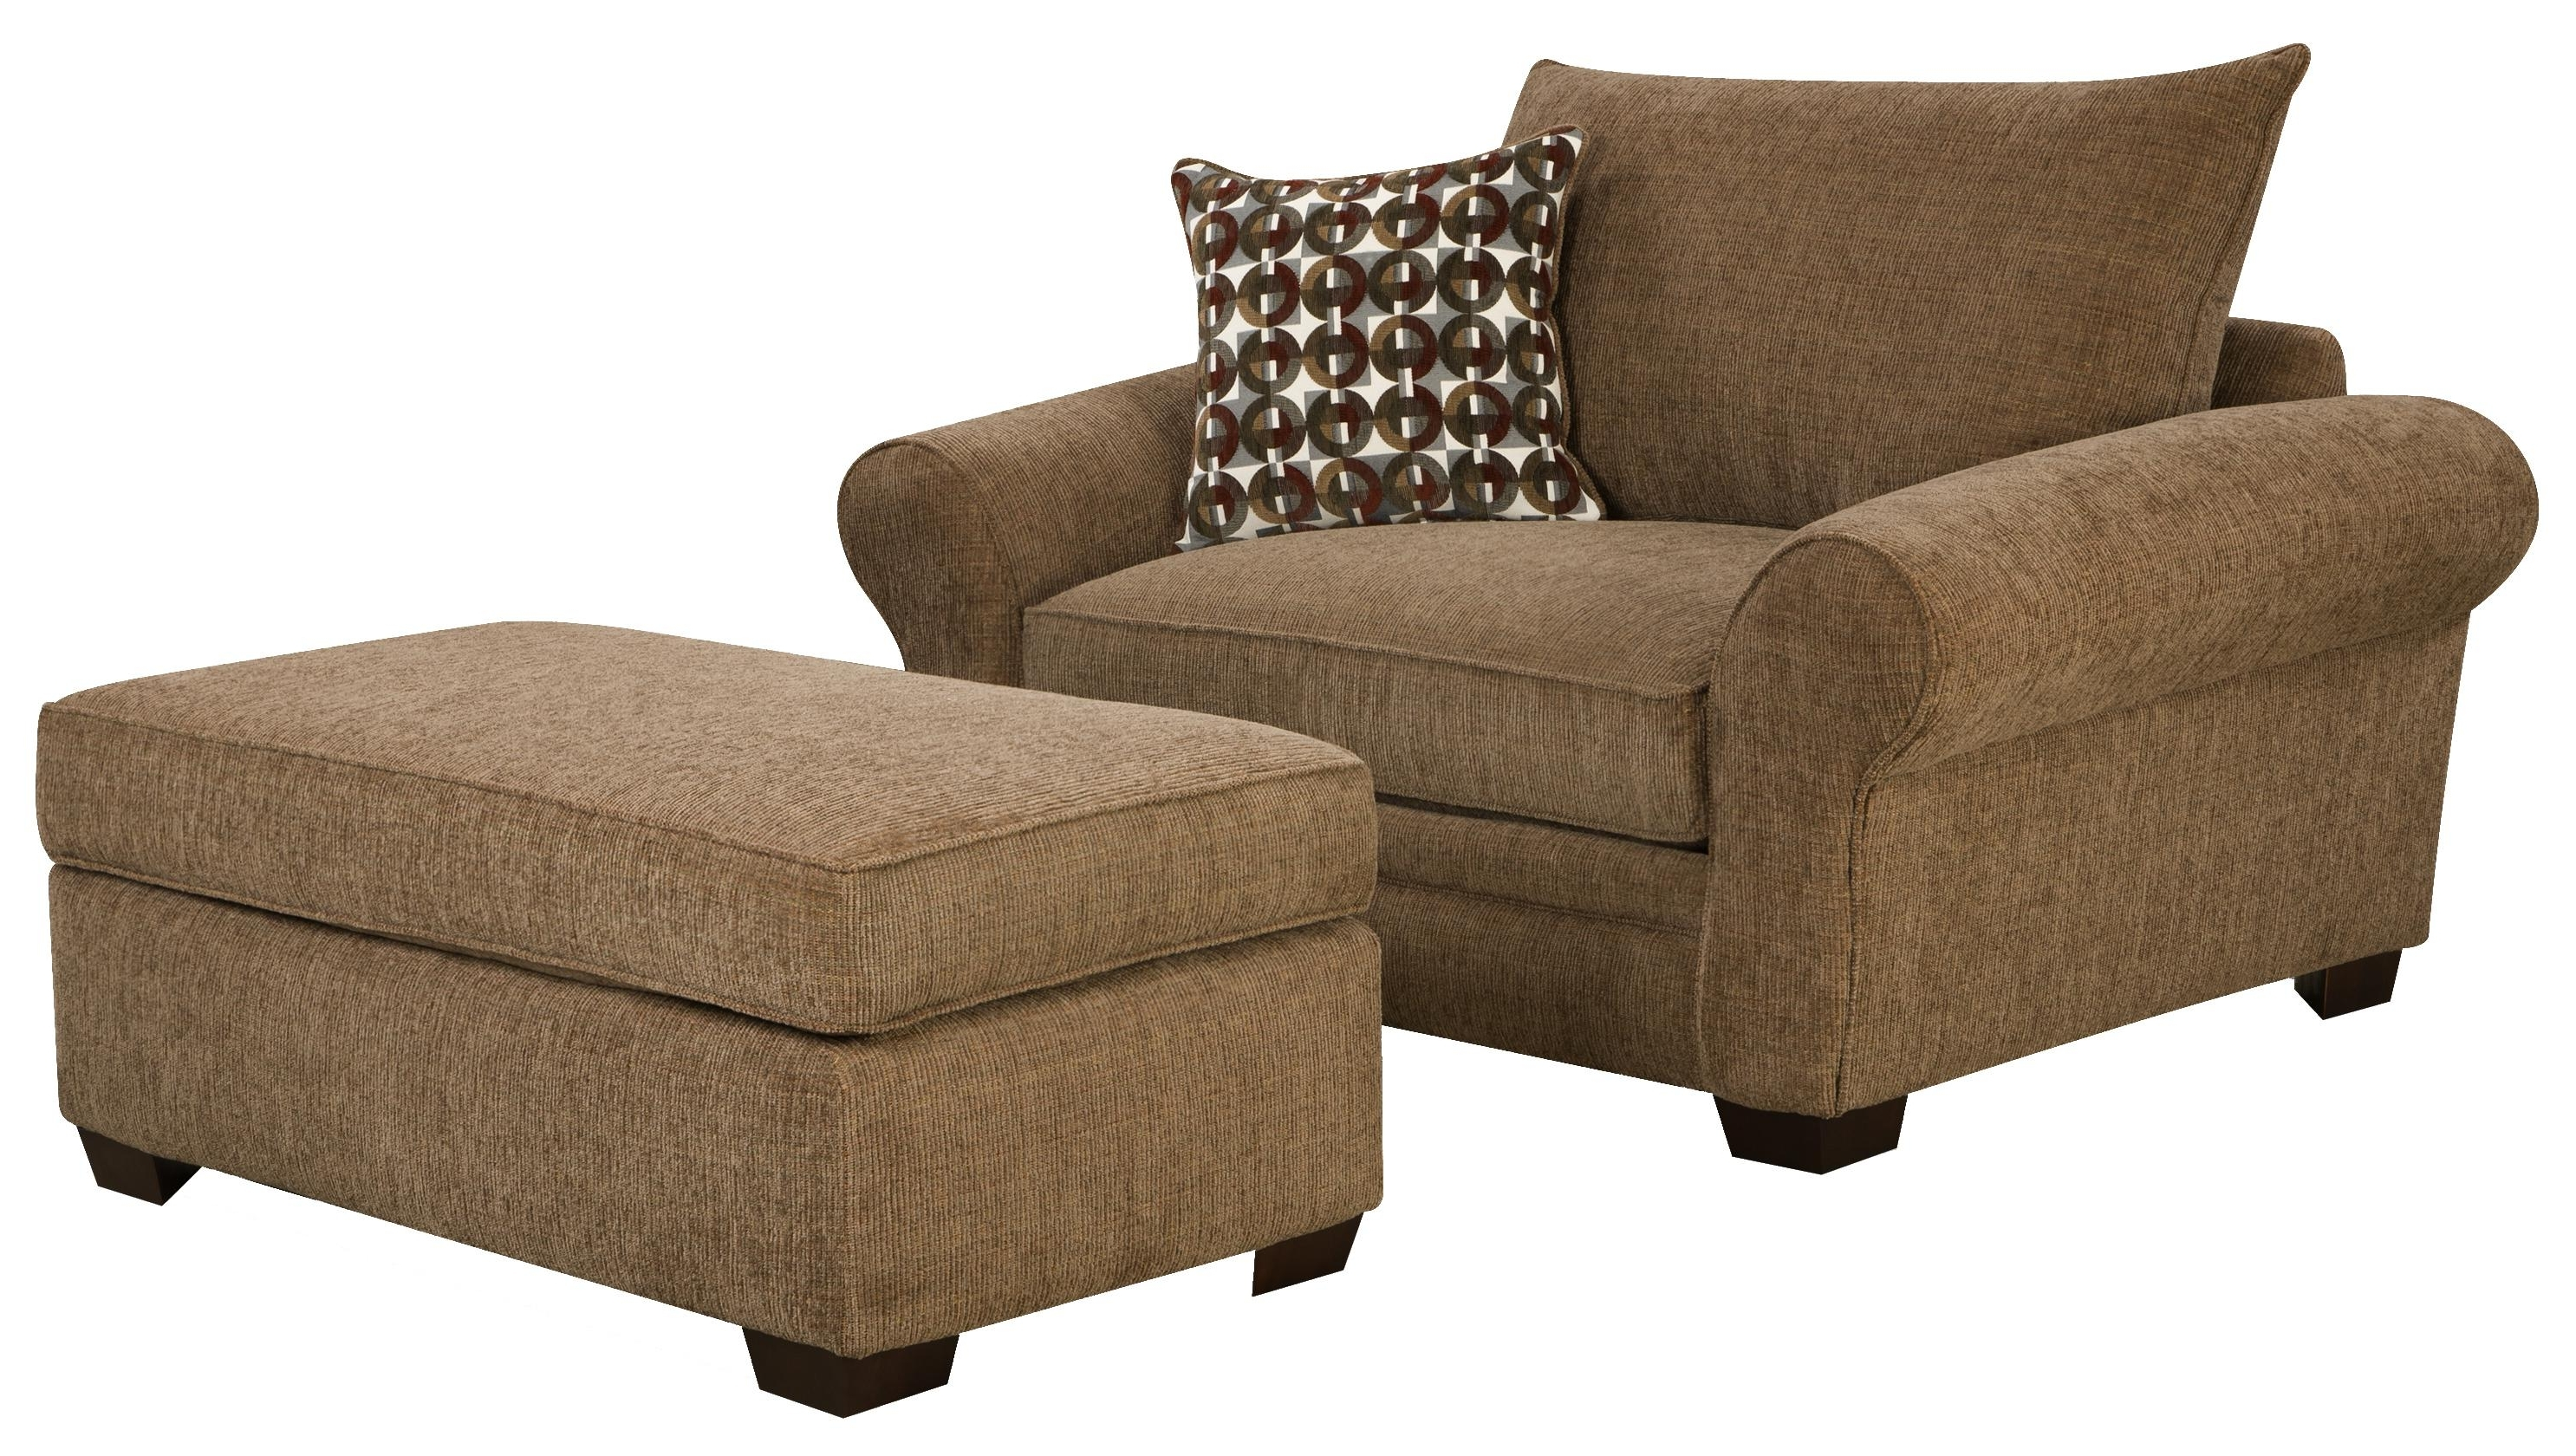 Chairs With Ottoman Regarding Most Popular Corinthian 5460 Extra Large Chair And A Half & Ottoman Set For (View 3 of 20)